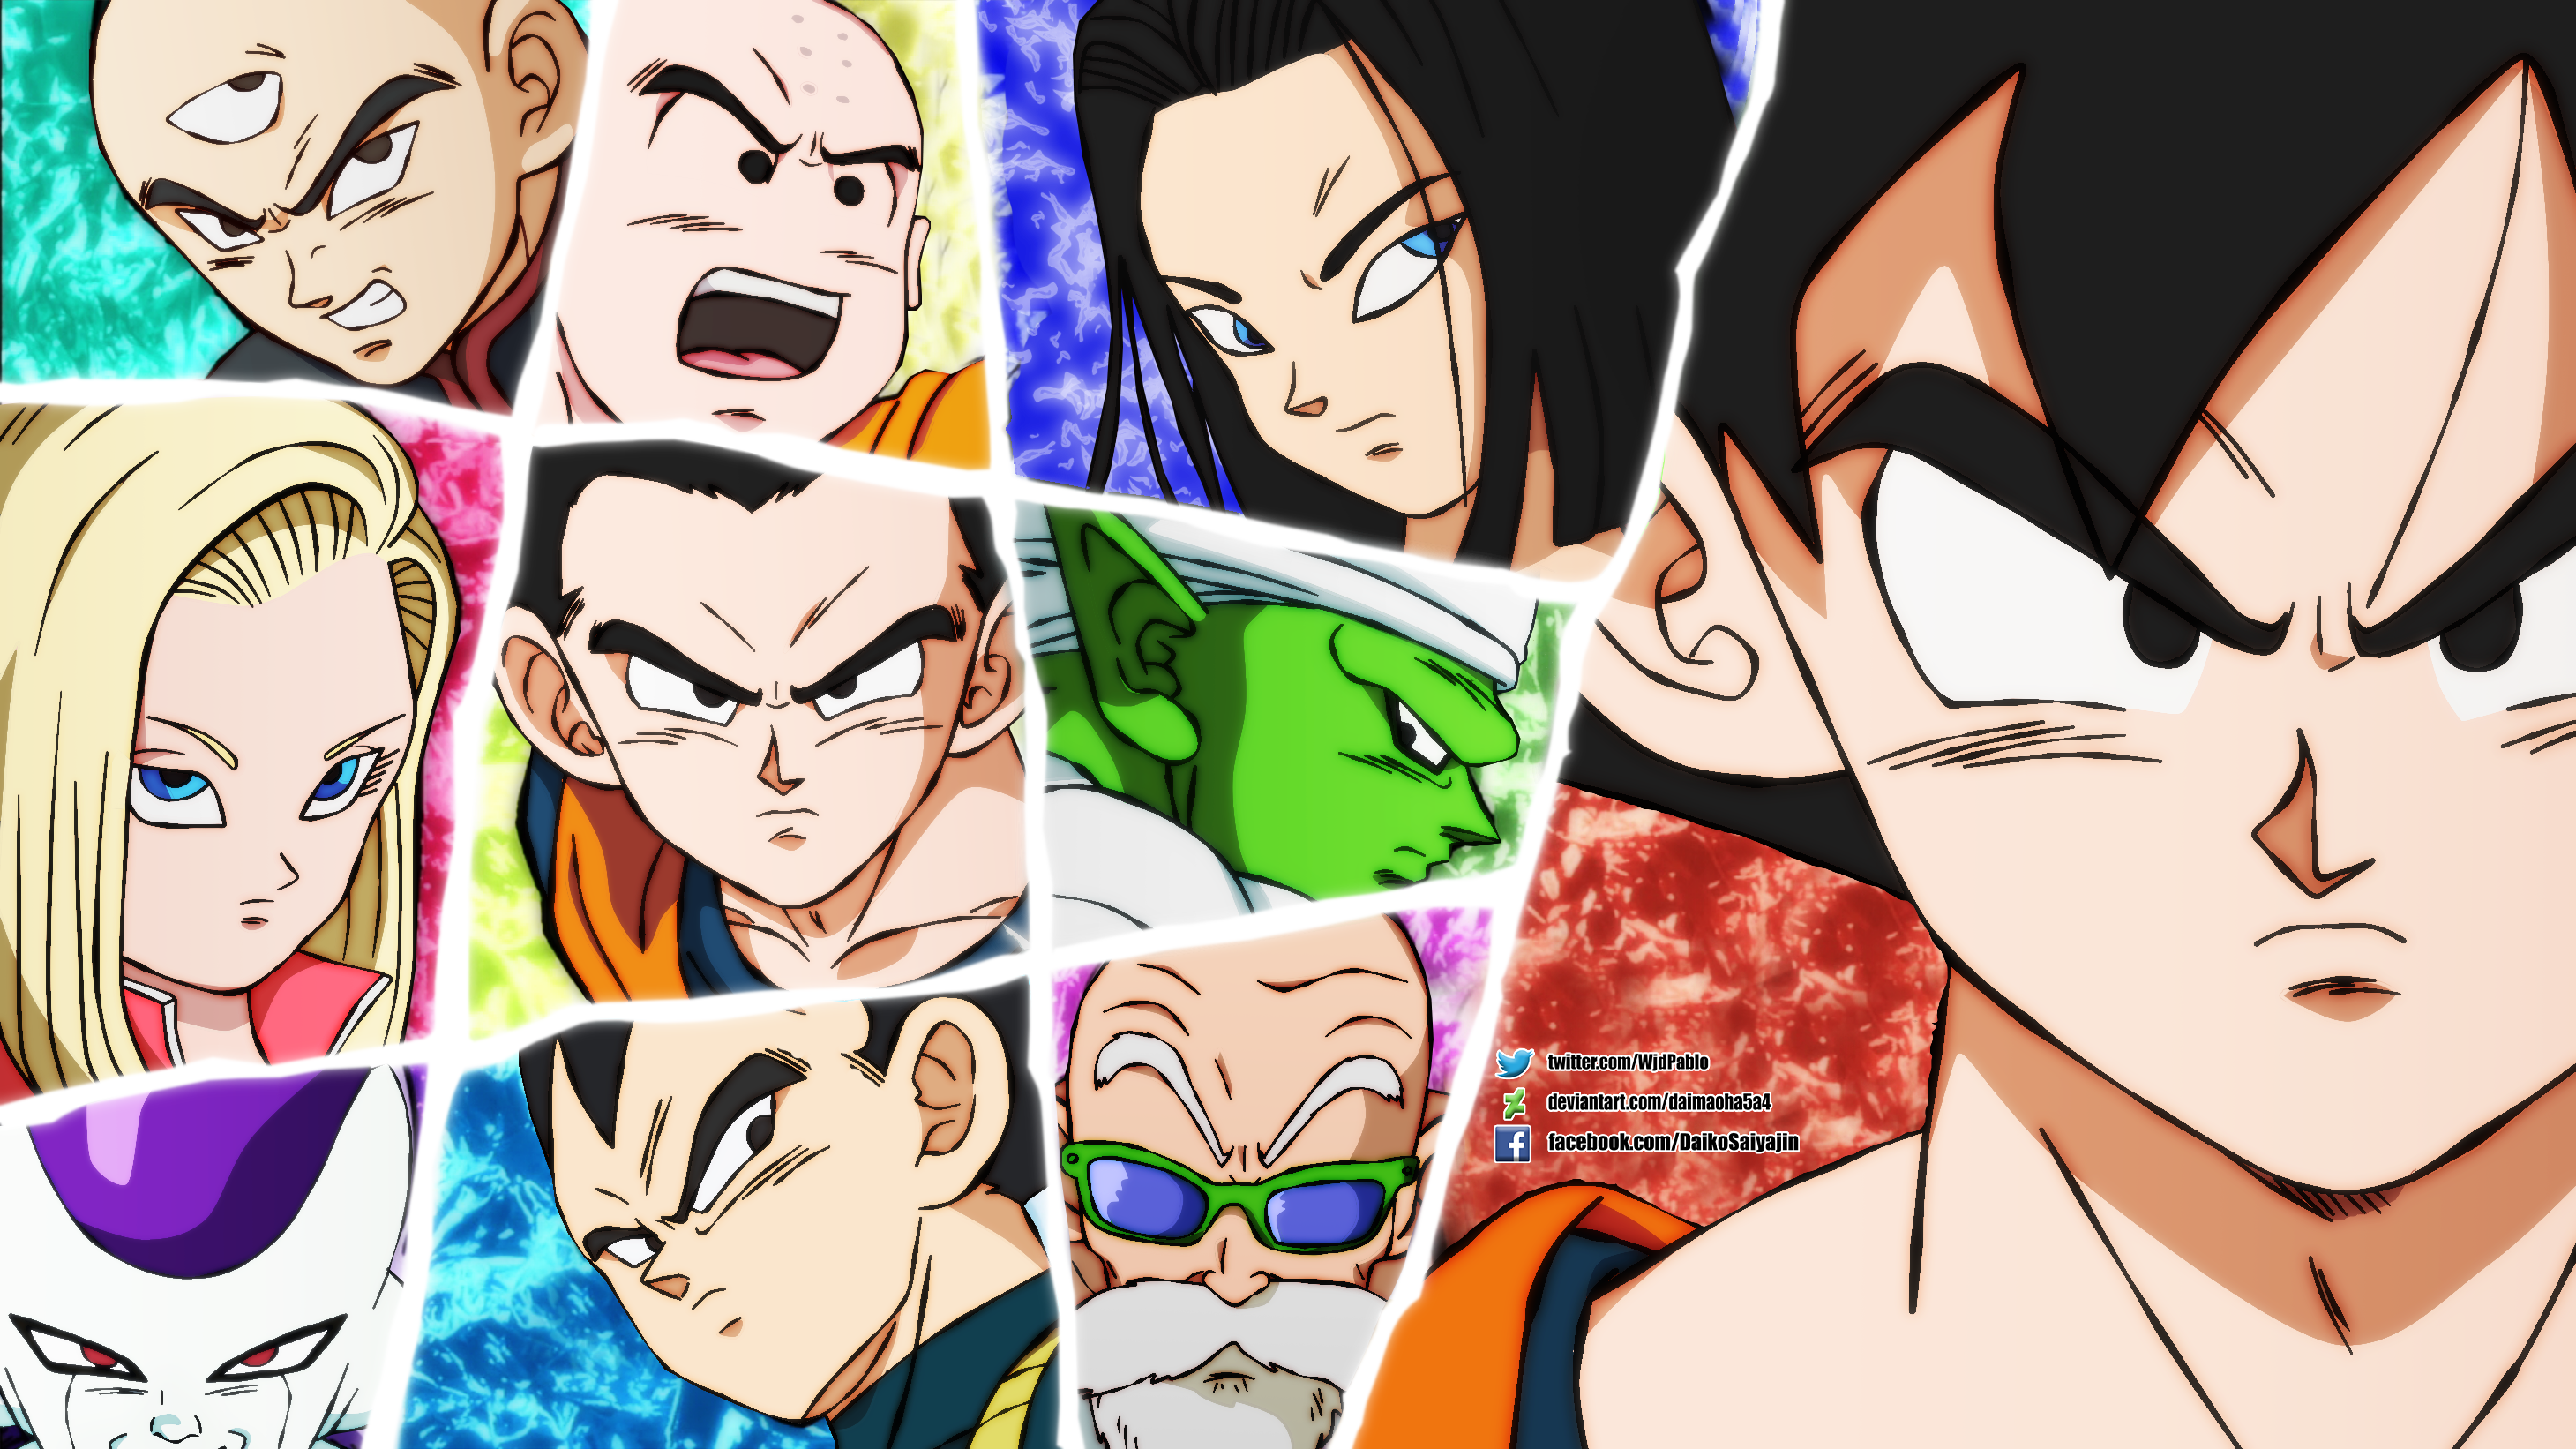 Tournament Of Power Hd Wallpaper Background Image 2920x1642